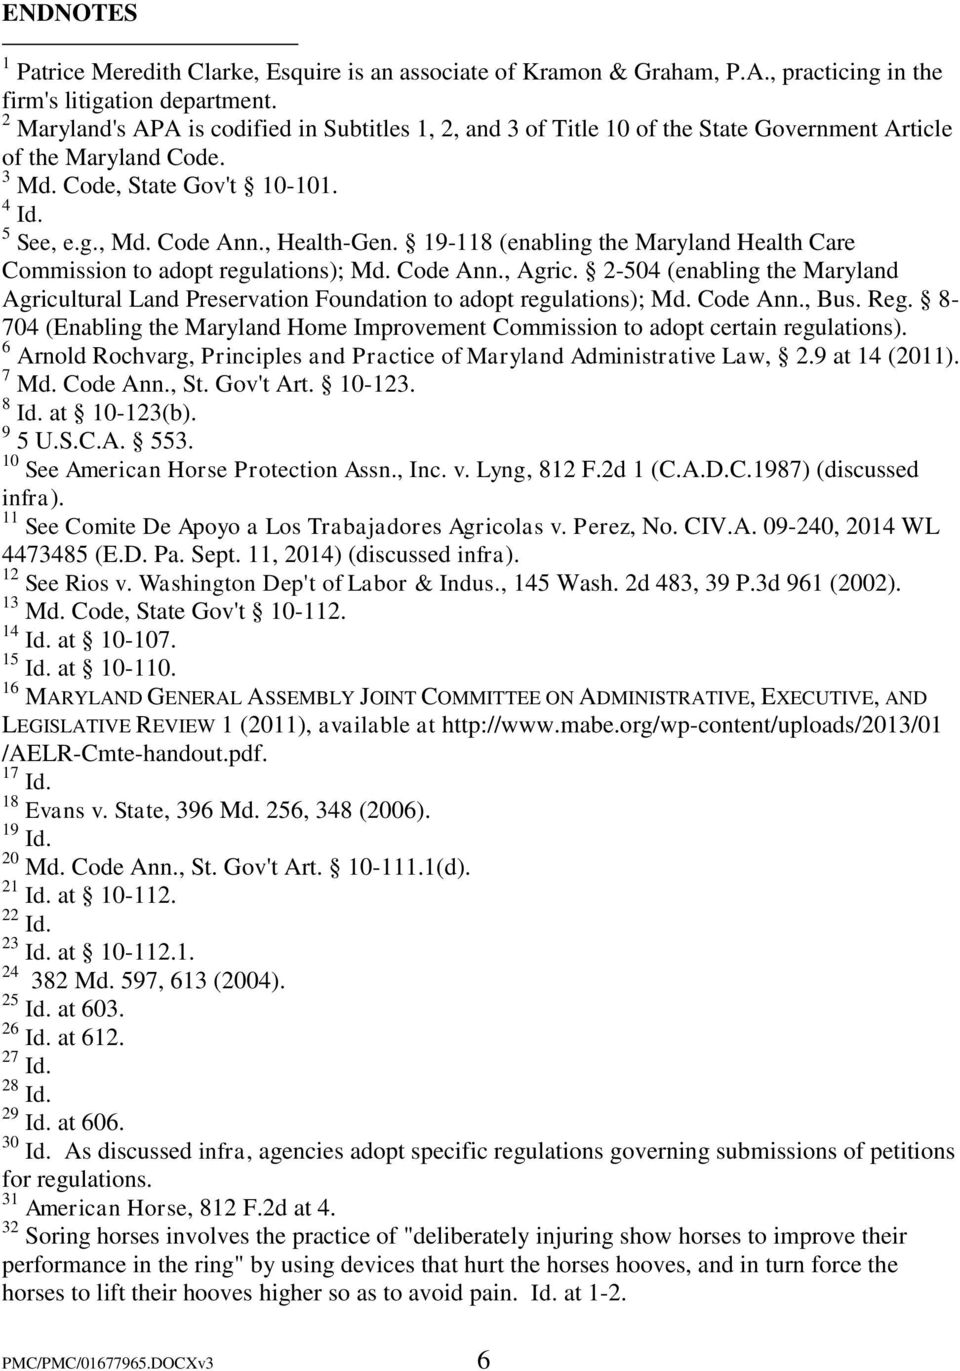 19-118 (enabling the Maryland Health Care Commission to adopt regulations); Md. Code Ann., Agric. 2-504 (enabling the Maryland Agricultural Land Preservation Foundation to adopt regulations); Md.